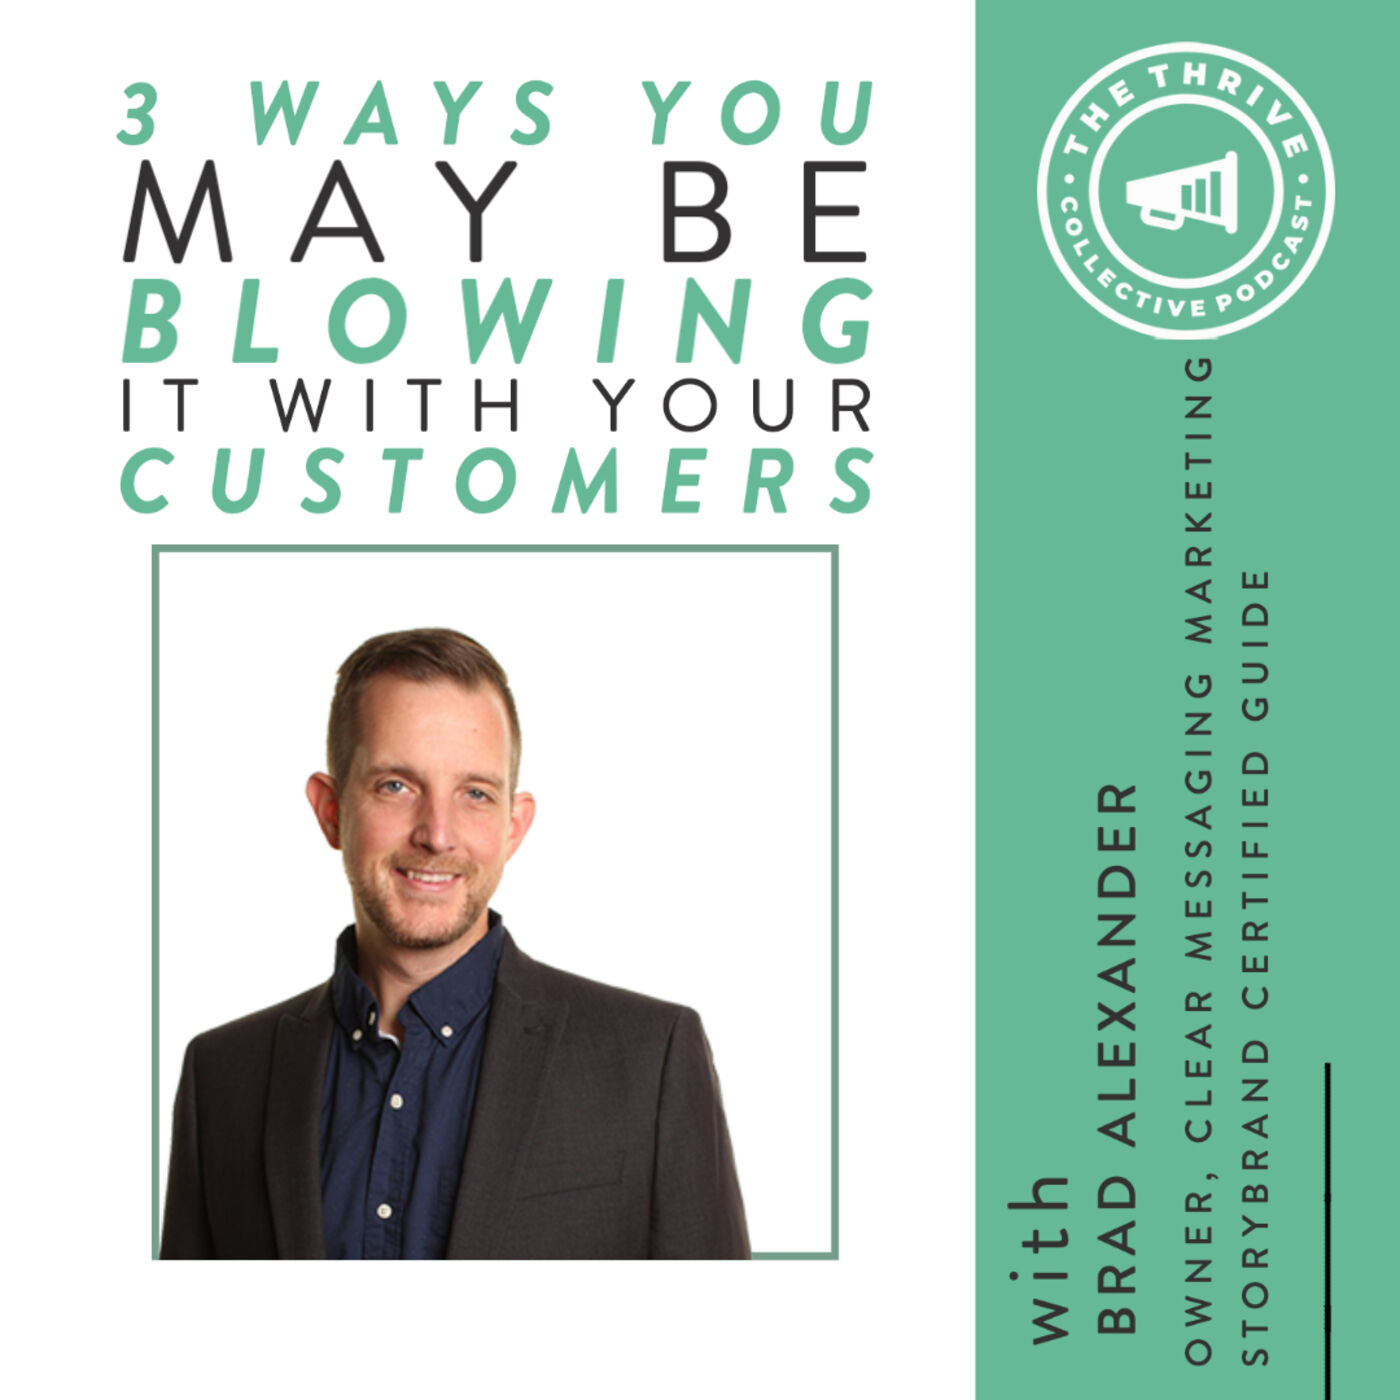 3 Ways You Might Be Blowing it with Your Customers with Brad Alexander